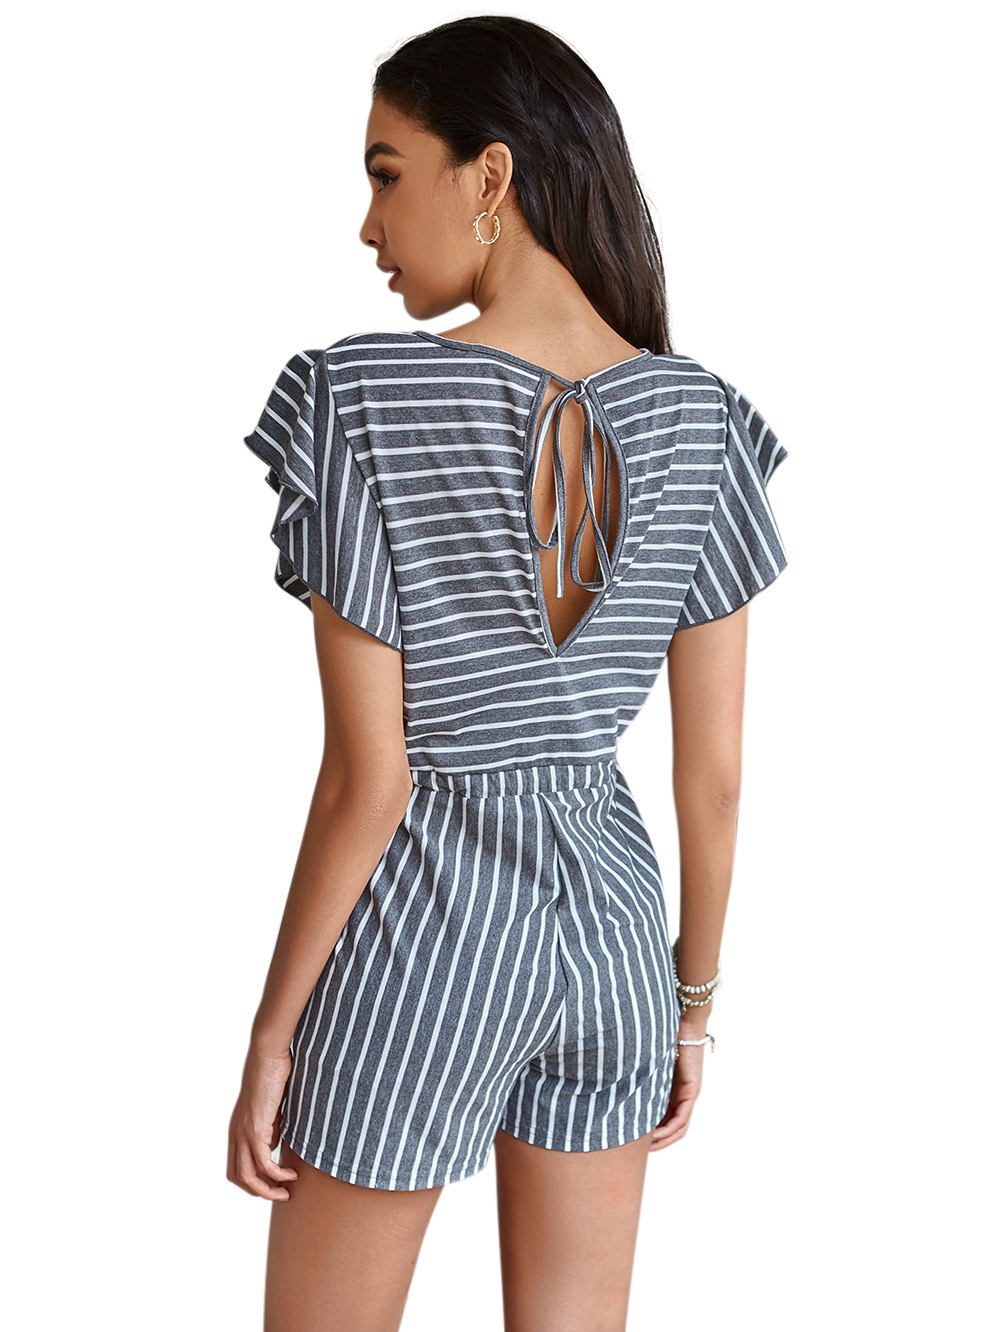 summer new fashion printed lace-up striped halter lace-up women's jumpsuit short sleeve top NSDF1552